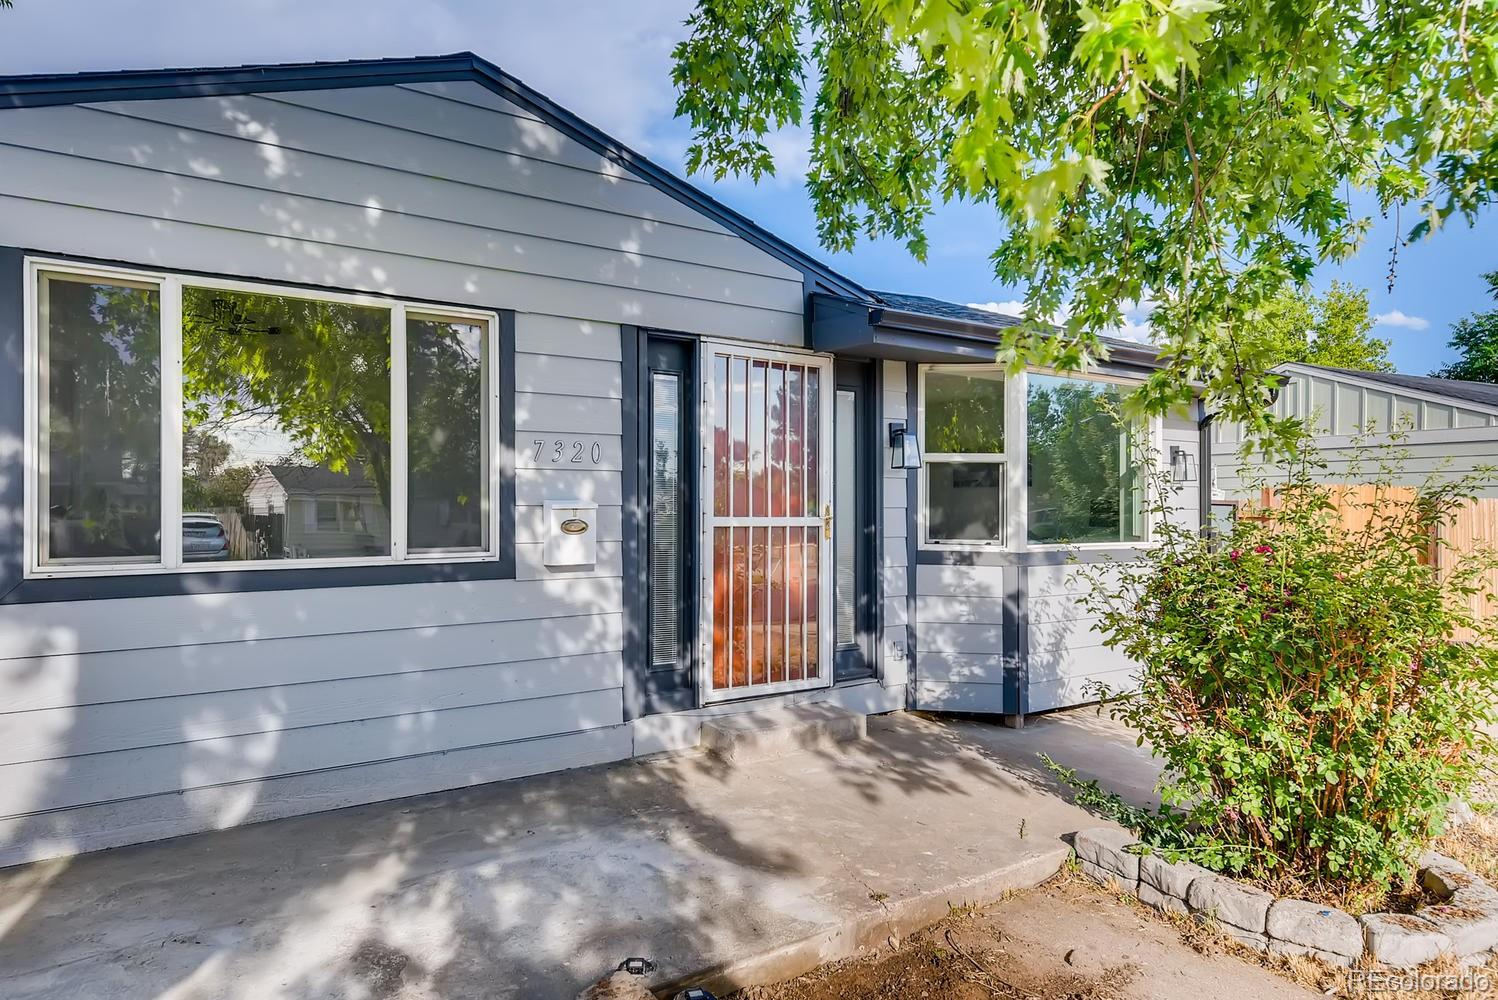 MLS# 2110549 - 3 - 7320 Dale Court, Westminster, CO 80030